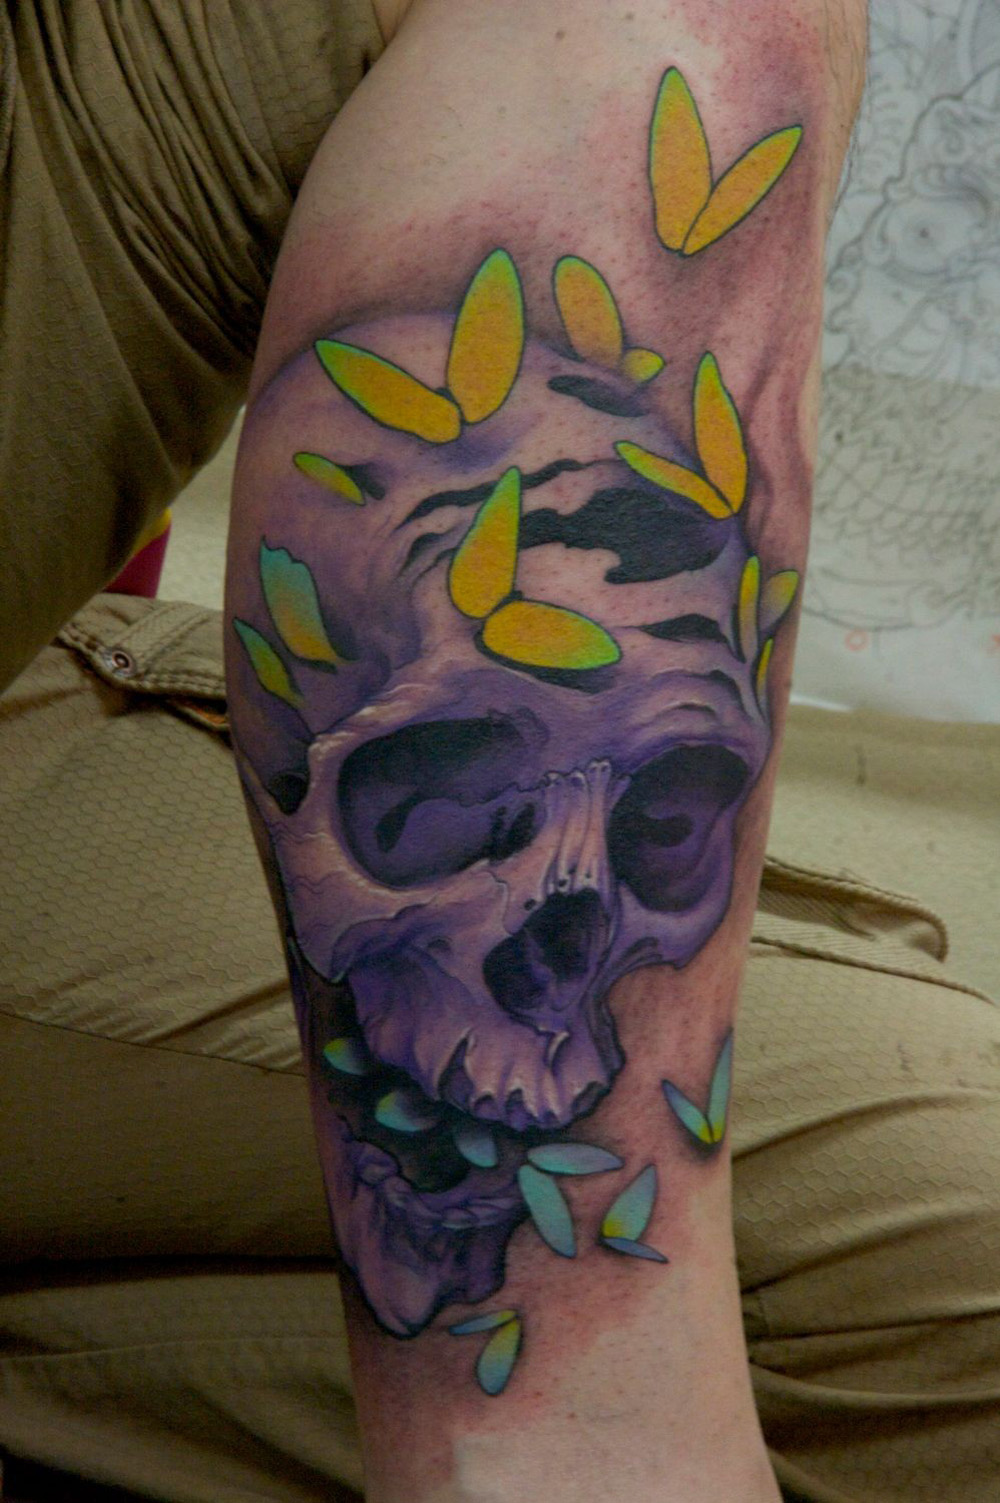 Tattoo of skull and butterfly design tattoomagz for Skull tattoos meaning